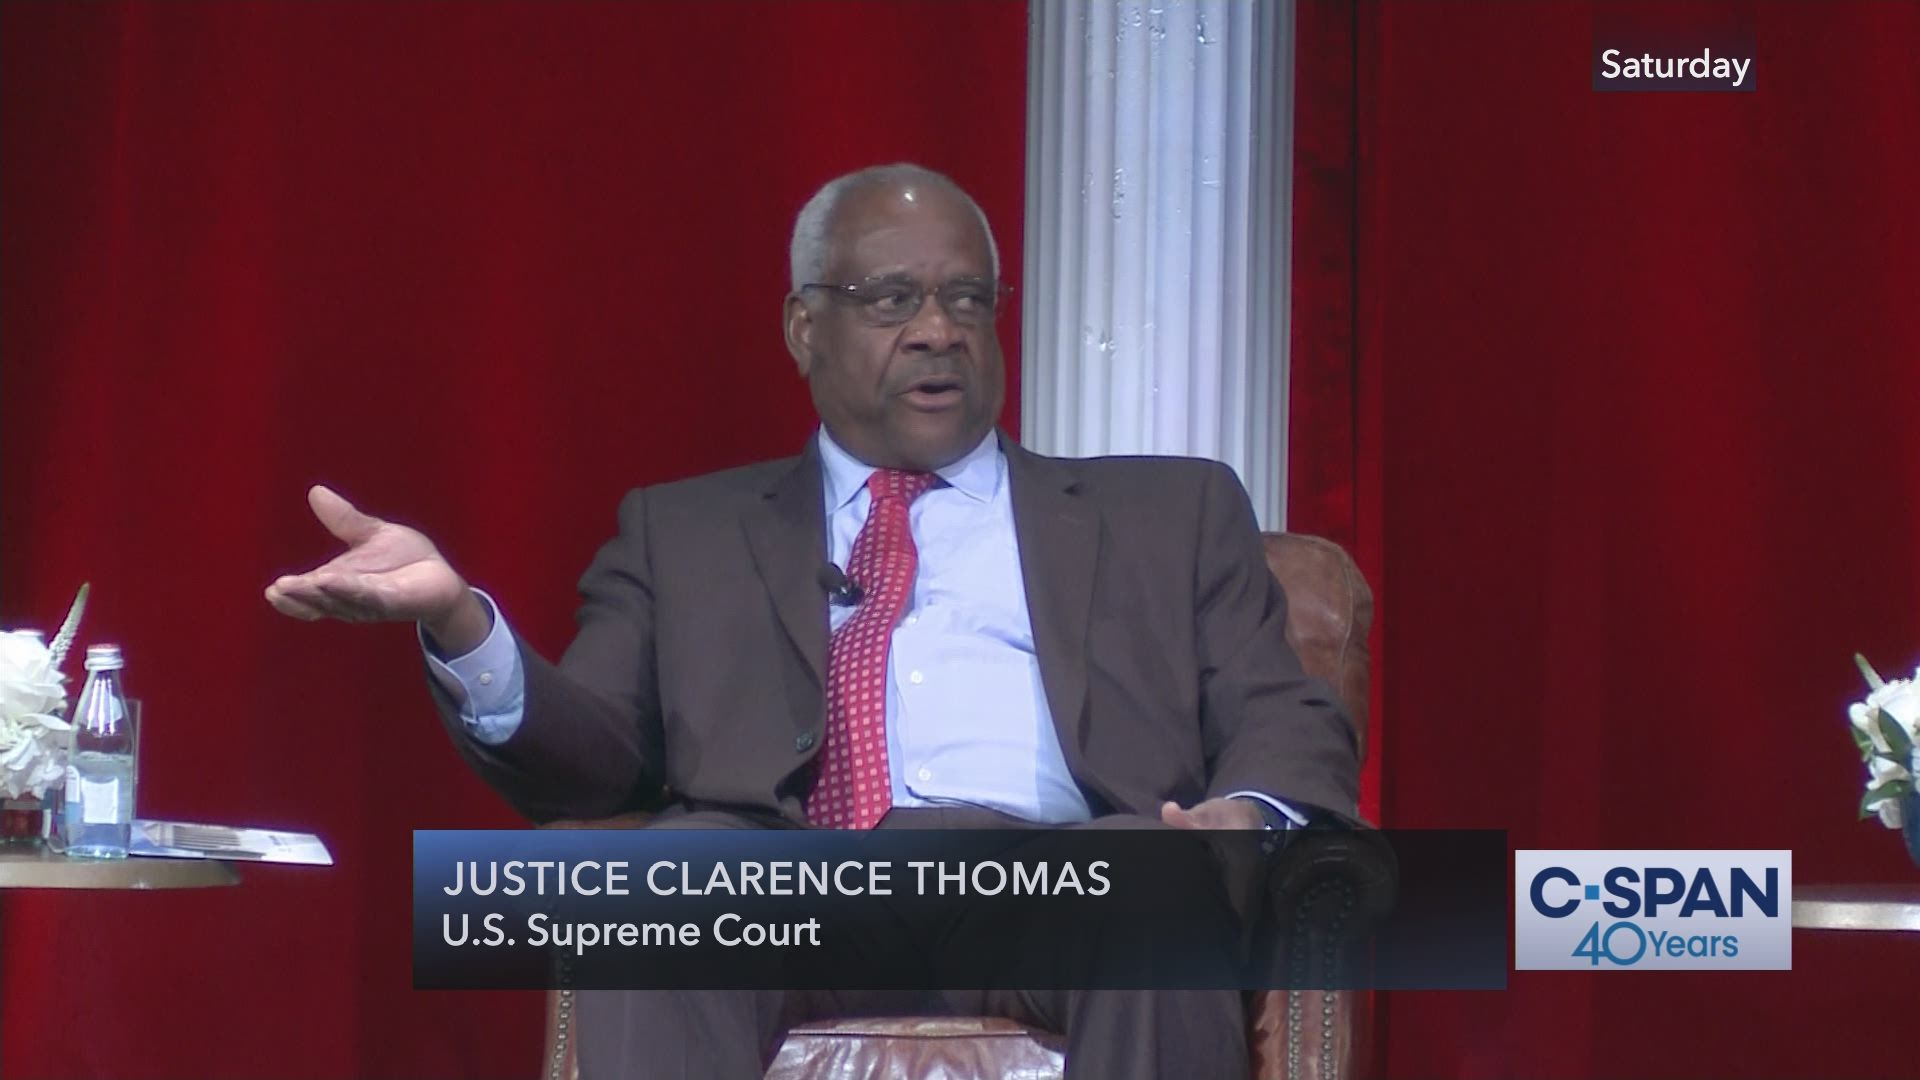 Justice Clarence Thomas Speaks At Pepperdine Law C Span Org